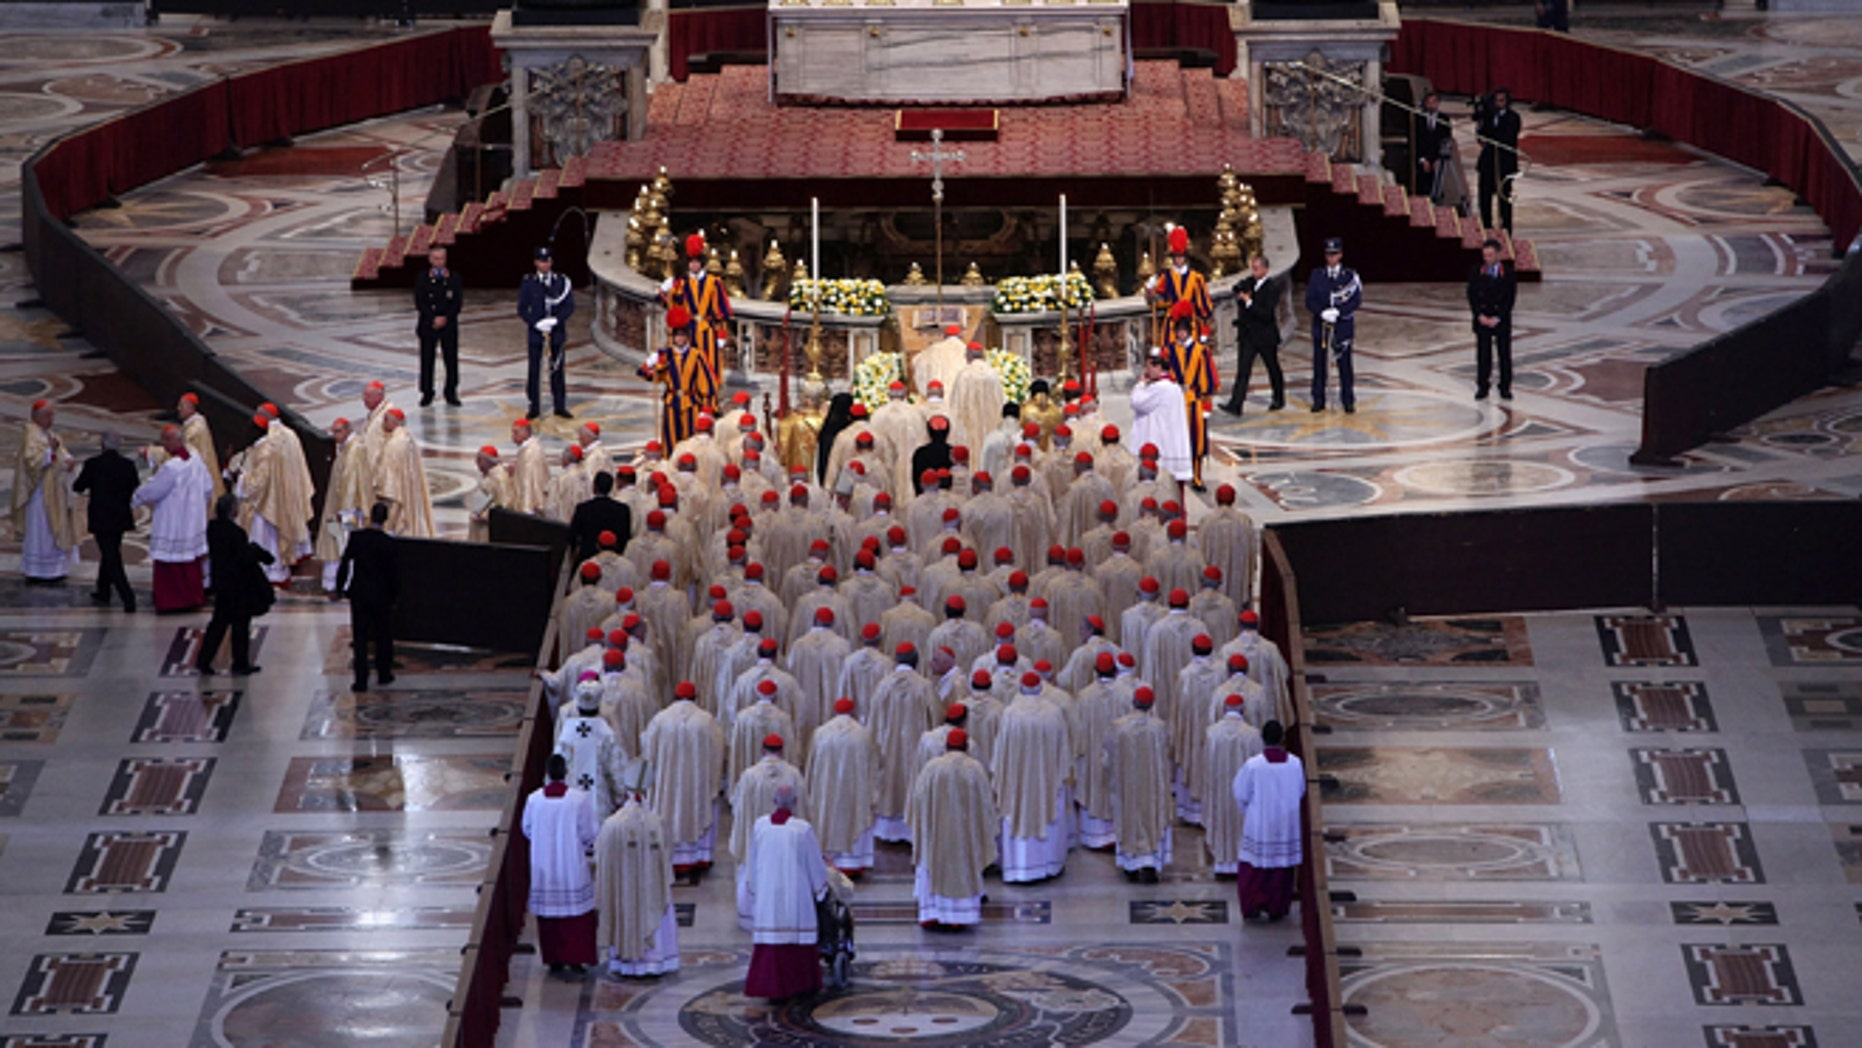 VATICAN CITY, VATICAN - MAY 01:  Pope Benedict XVI and cardinals pray in front of the coffin of John Paul II at St. Peter's Basilica at the end of John Paul II Beatification Ceremony held by Pope Benedict XVI on May 1, 2011 in Vatican City, Vatican. The ceremony marking the beatification and the last stages of the process to elevate Pope John Paul II to sainthood was led by his successor Pope Benedict XI and attended by tens of thousands of pilgrims alongside heads of state and dignitaries.  (Photo by Franco Origlia/Getty Images)